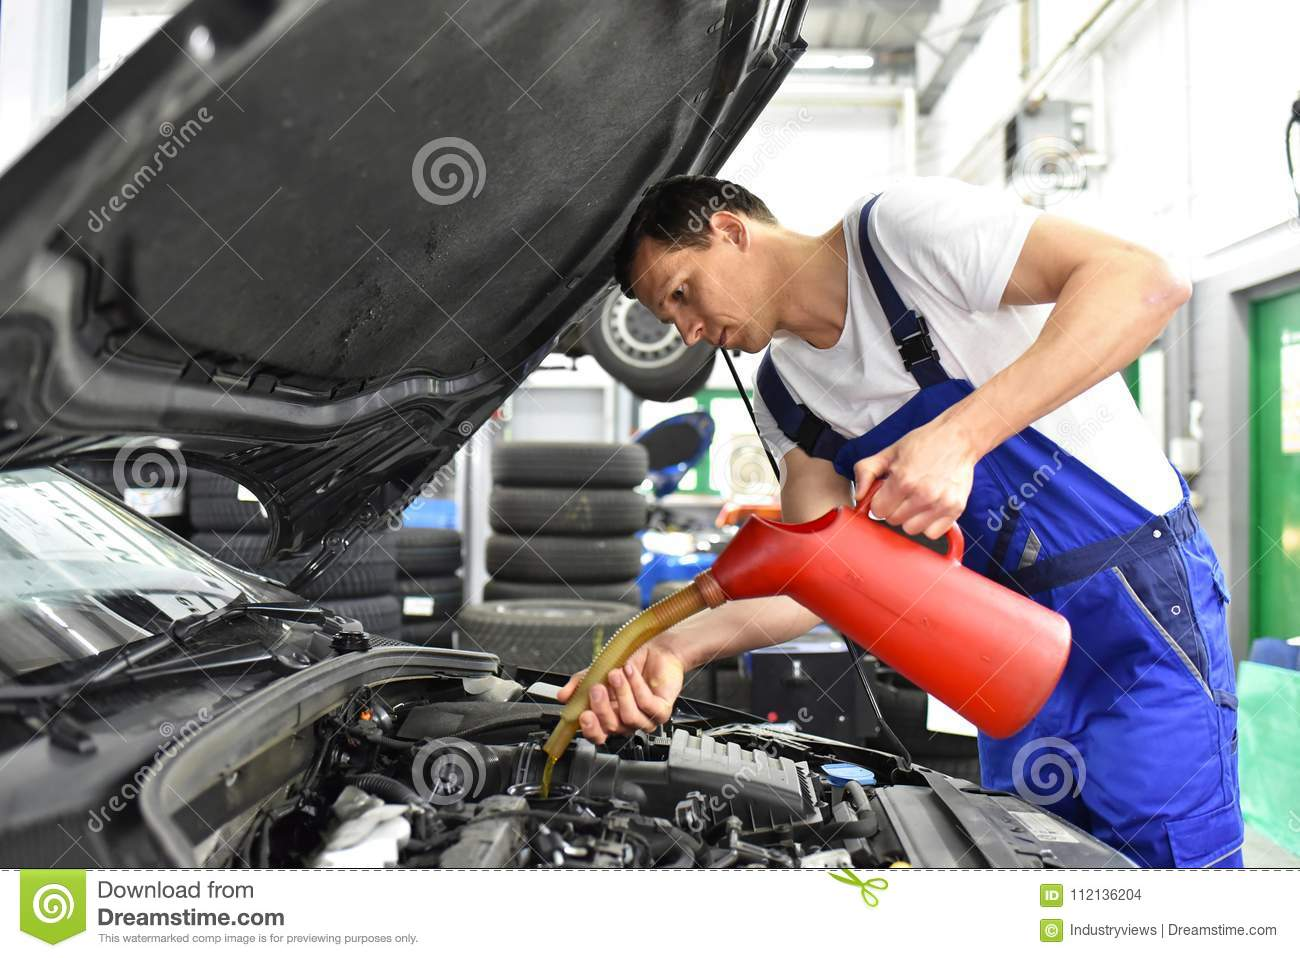 oil change from the engine of a car in a workshop by a professional mechanic - after-sales service